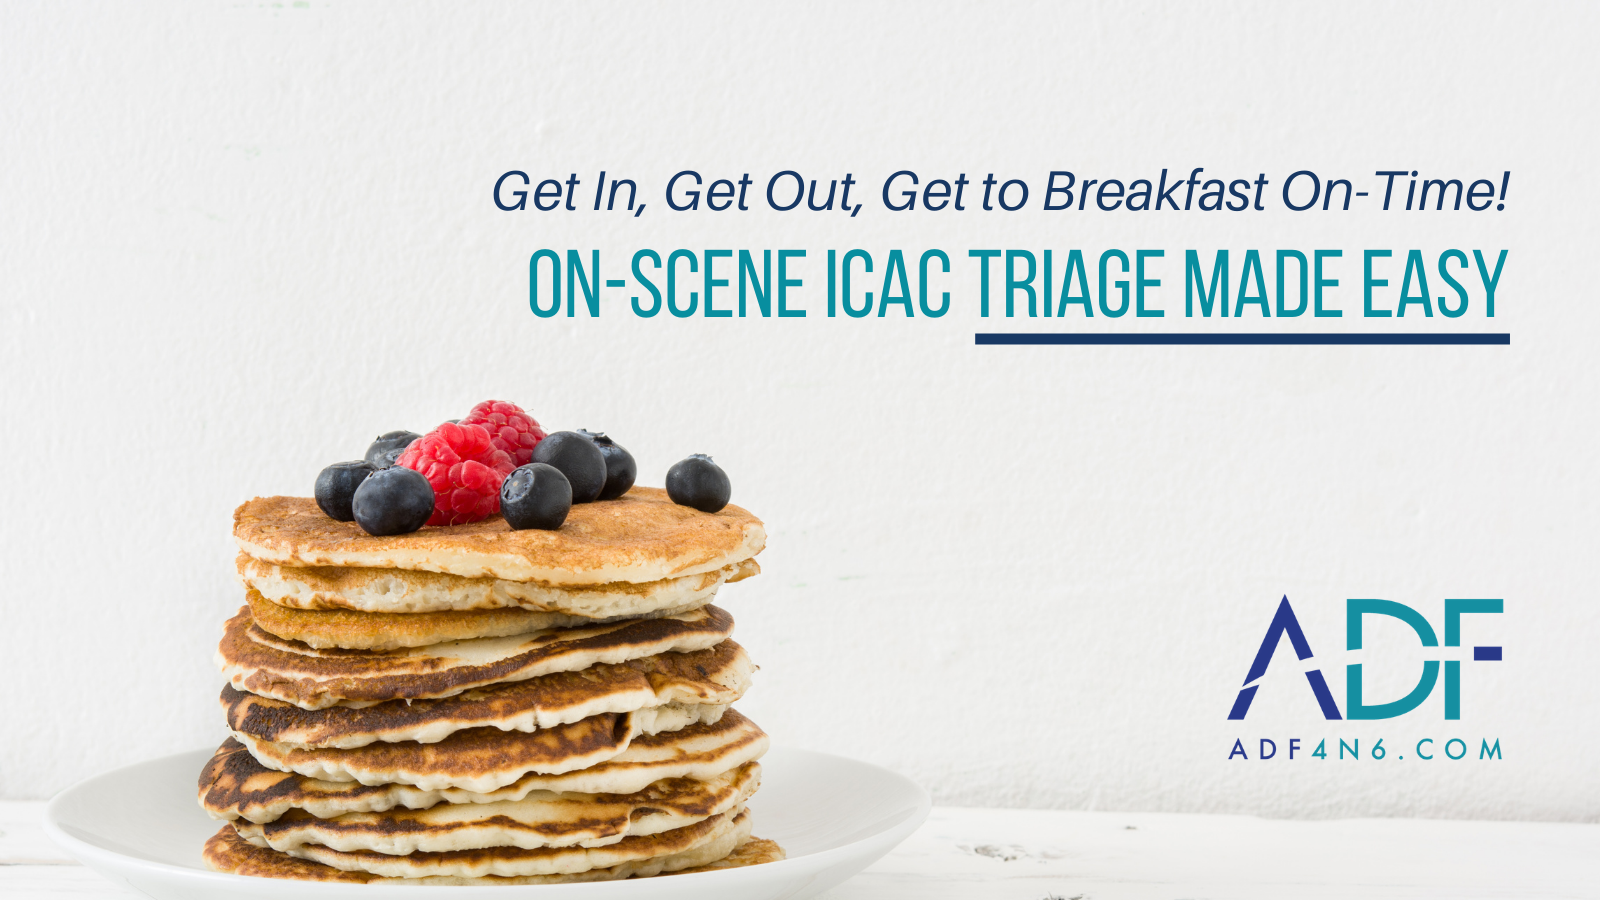 Get In, Get Out, Get to Breakfast On-Time! Triage Made Easy